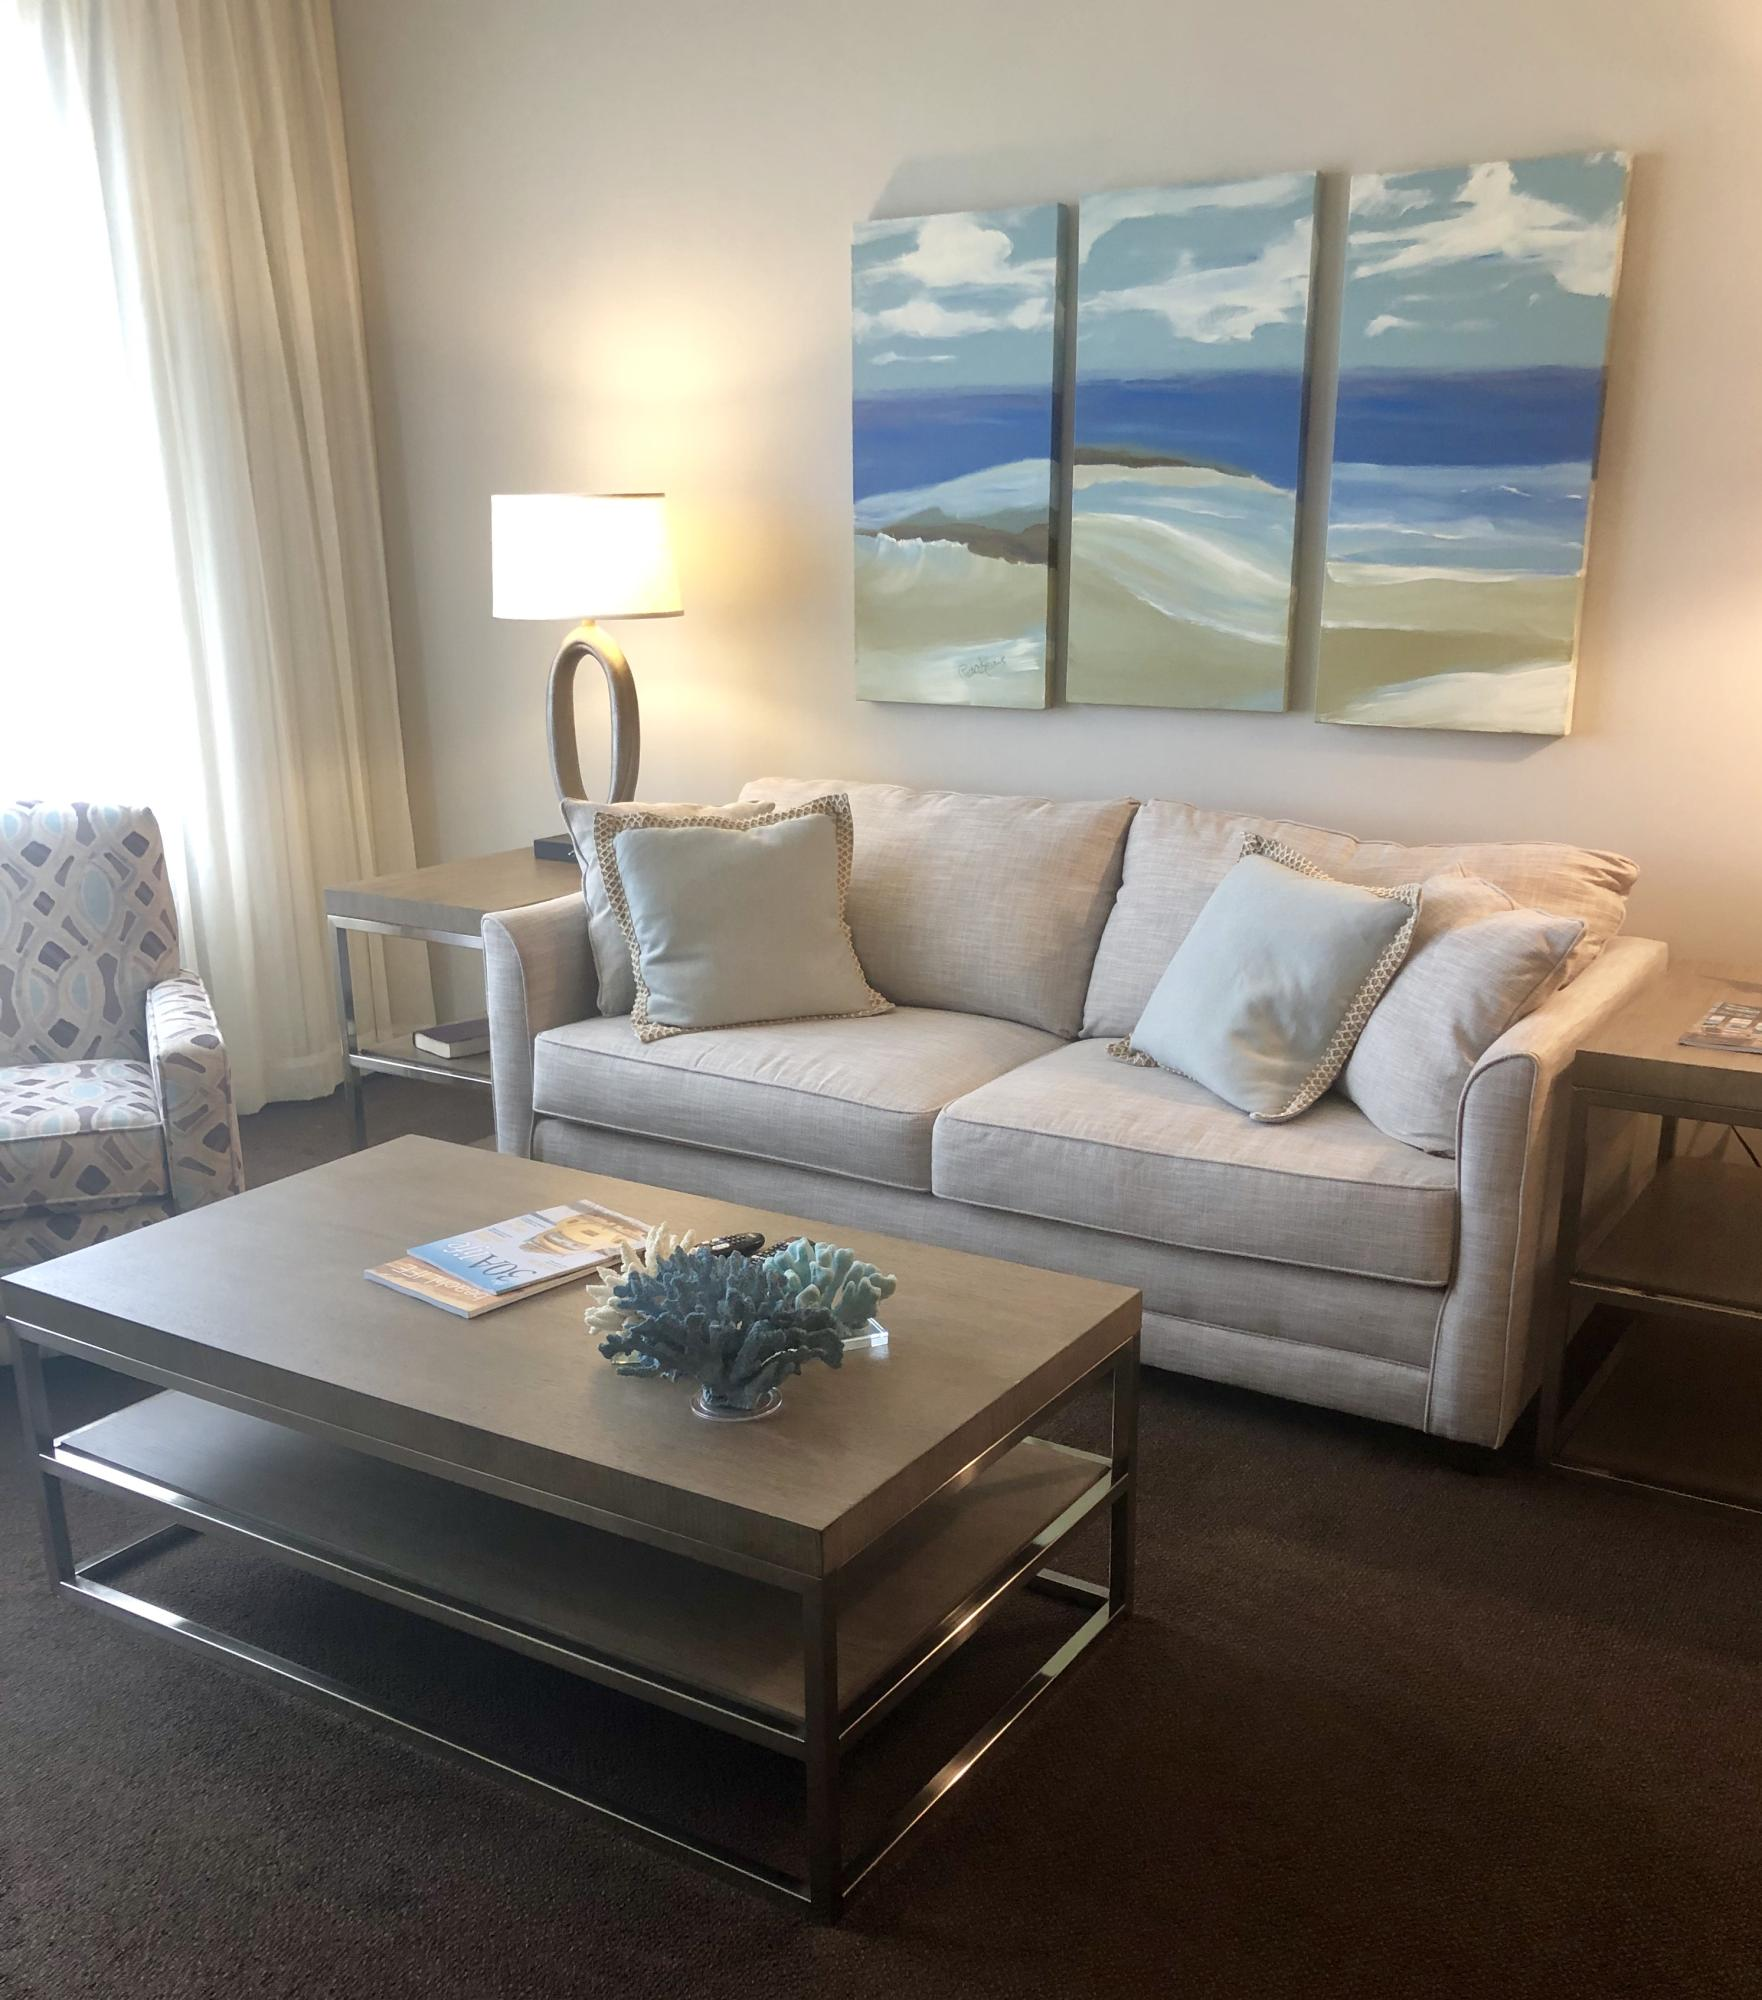 Welcome to this beautiful unit serenely tucked away in the village of the world renowned Sandestin Resort.  Everything is within walking distance from this newly decorated unit on the fourth floor. Beaches, pools, shopping, dining and golfing...what more could you ask for? Great rental income!